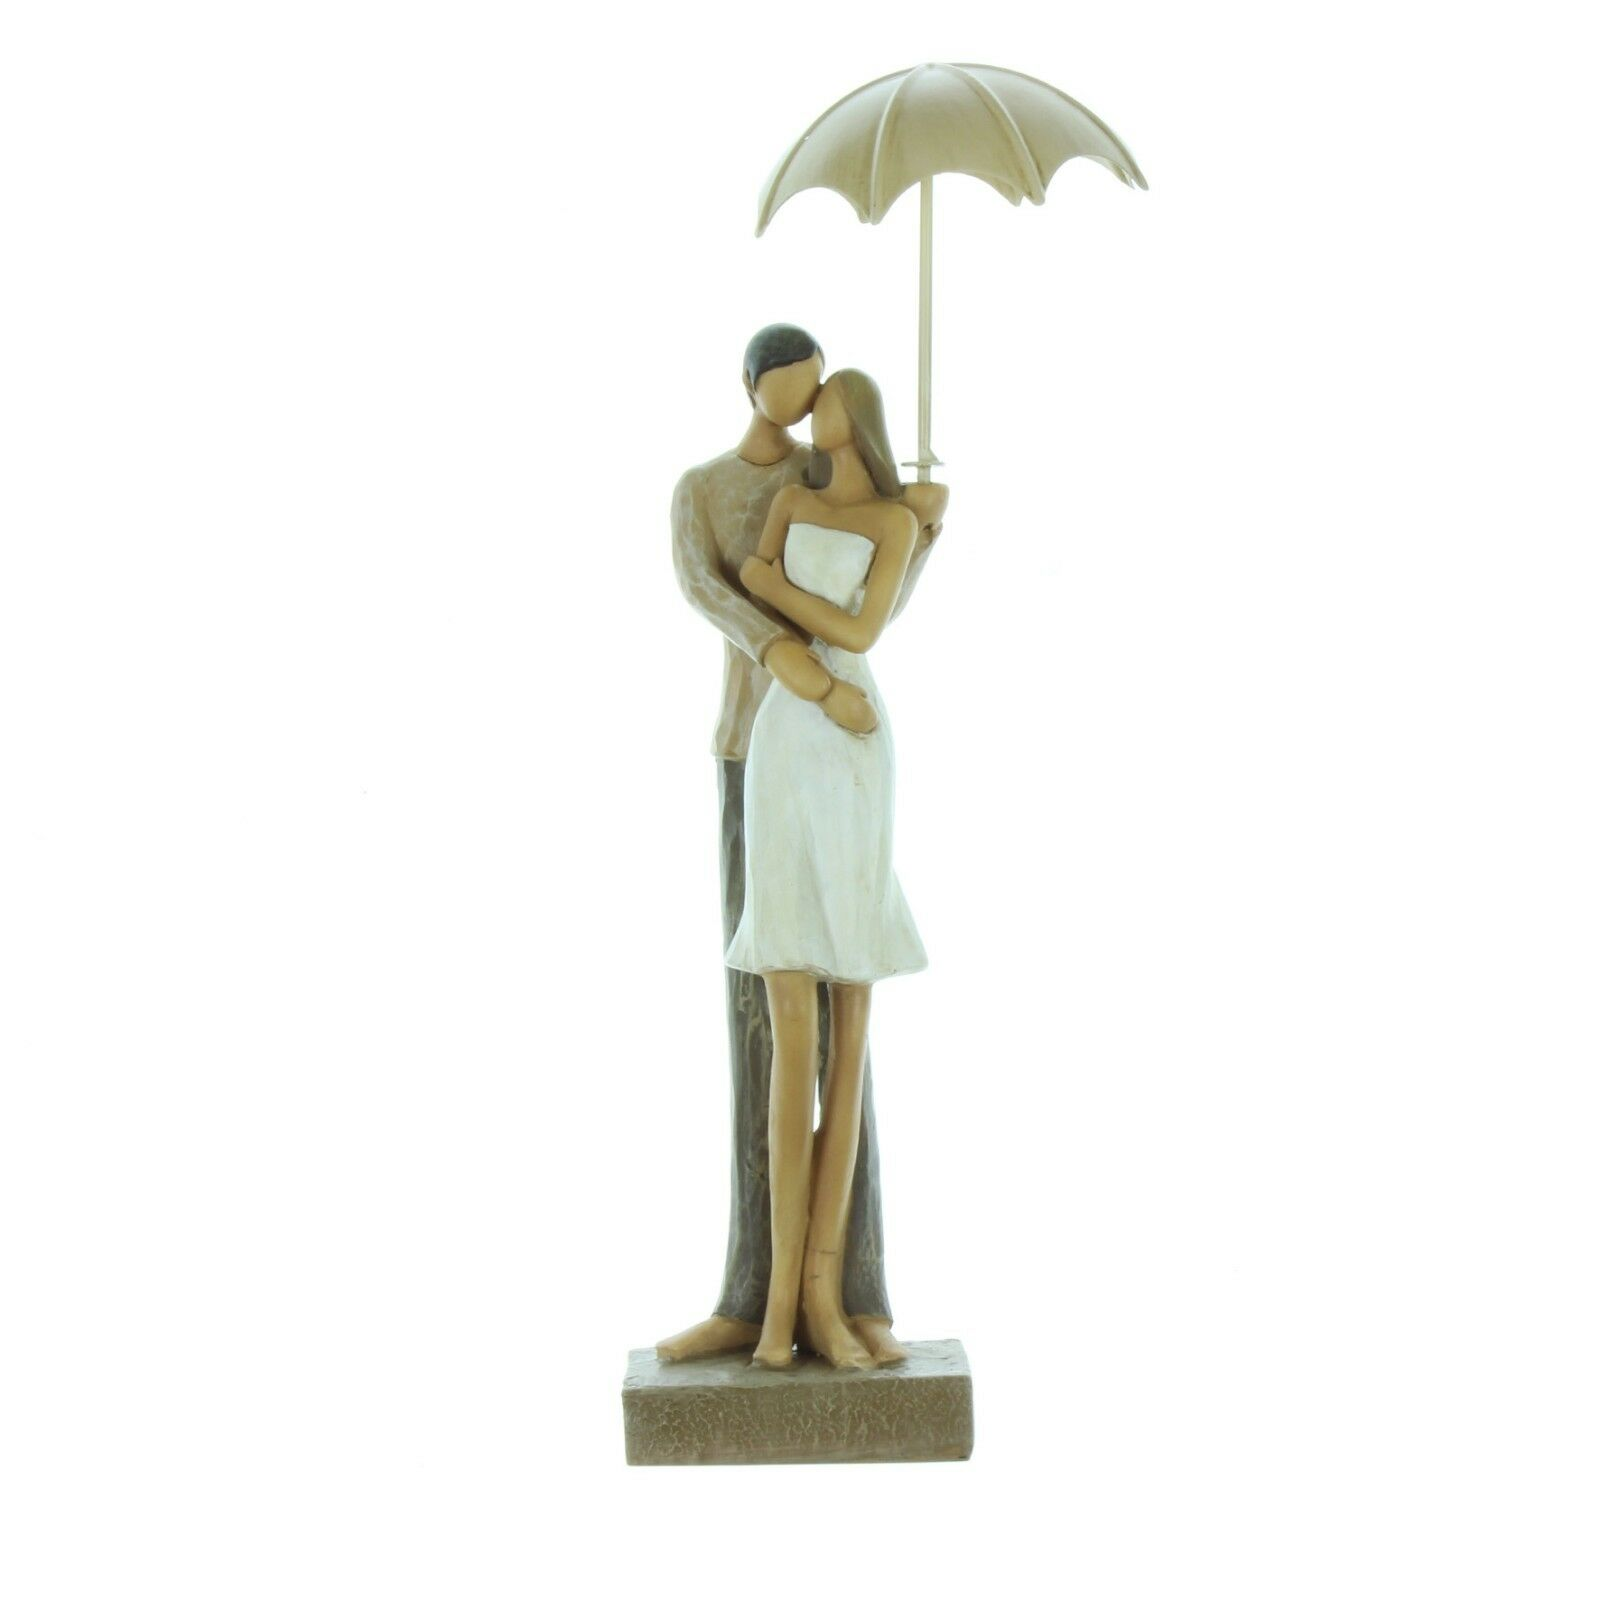 Juliana rainy day modern man woman couple figurine ornament 1 of 1only 1 available publicscrutiny Choice Image